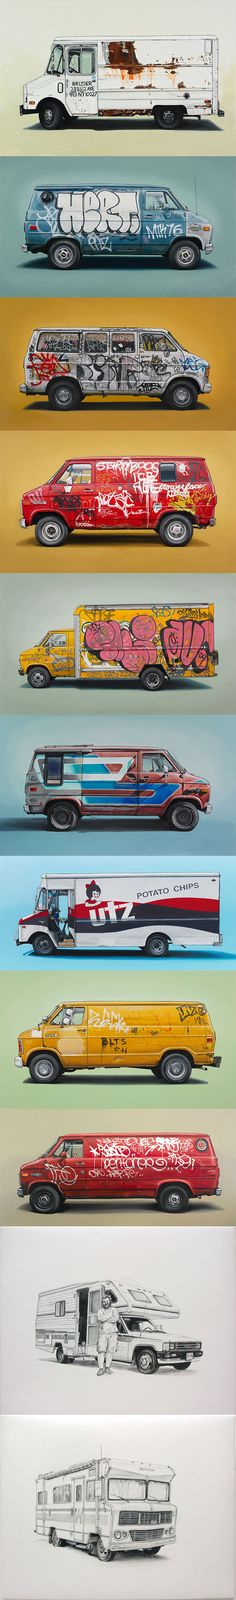 The fantastic oli paintings by Kevin Cyr